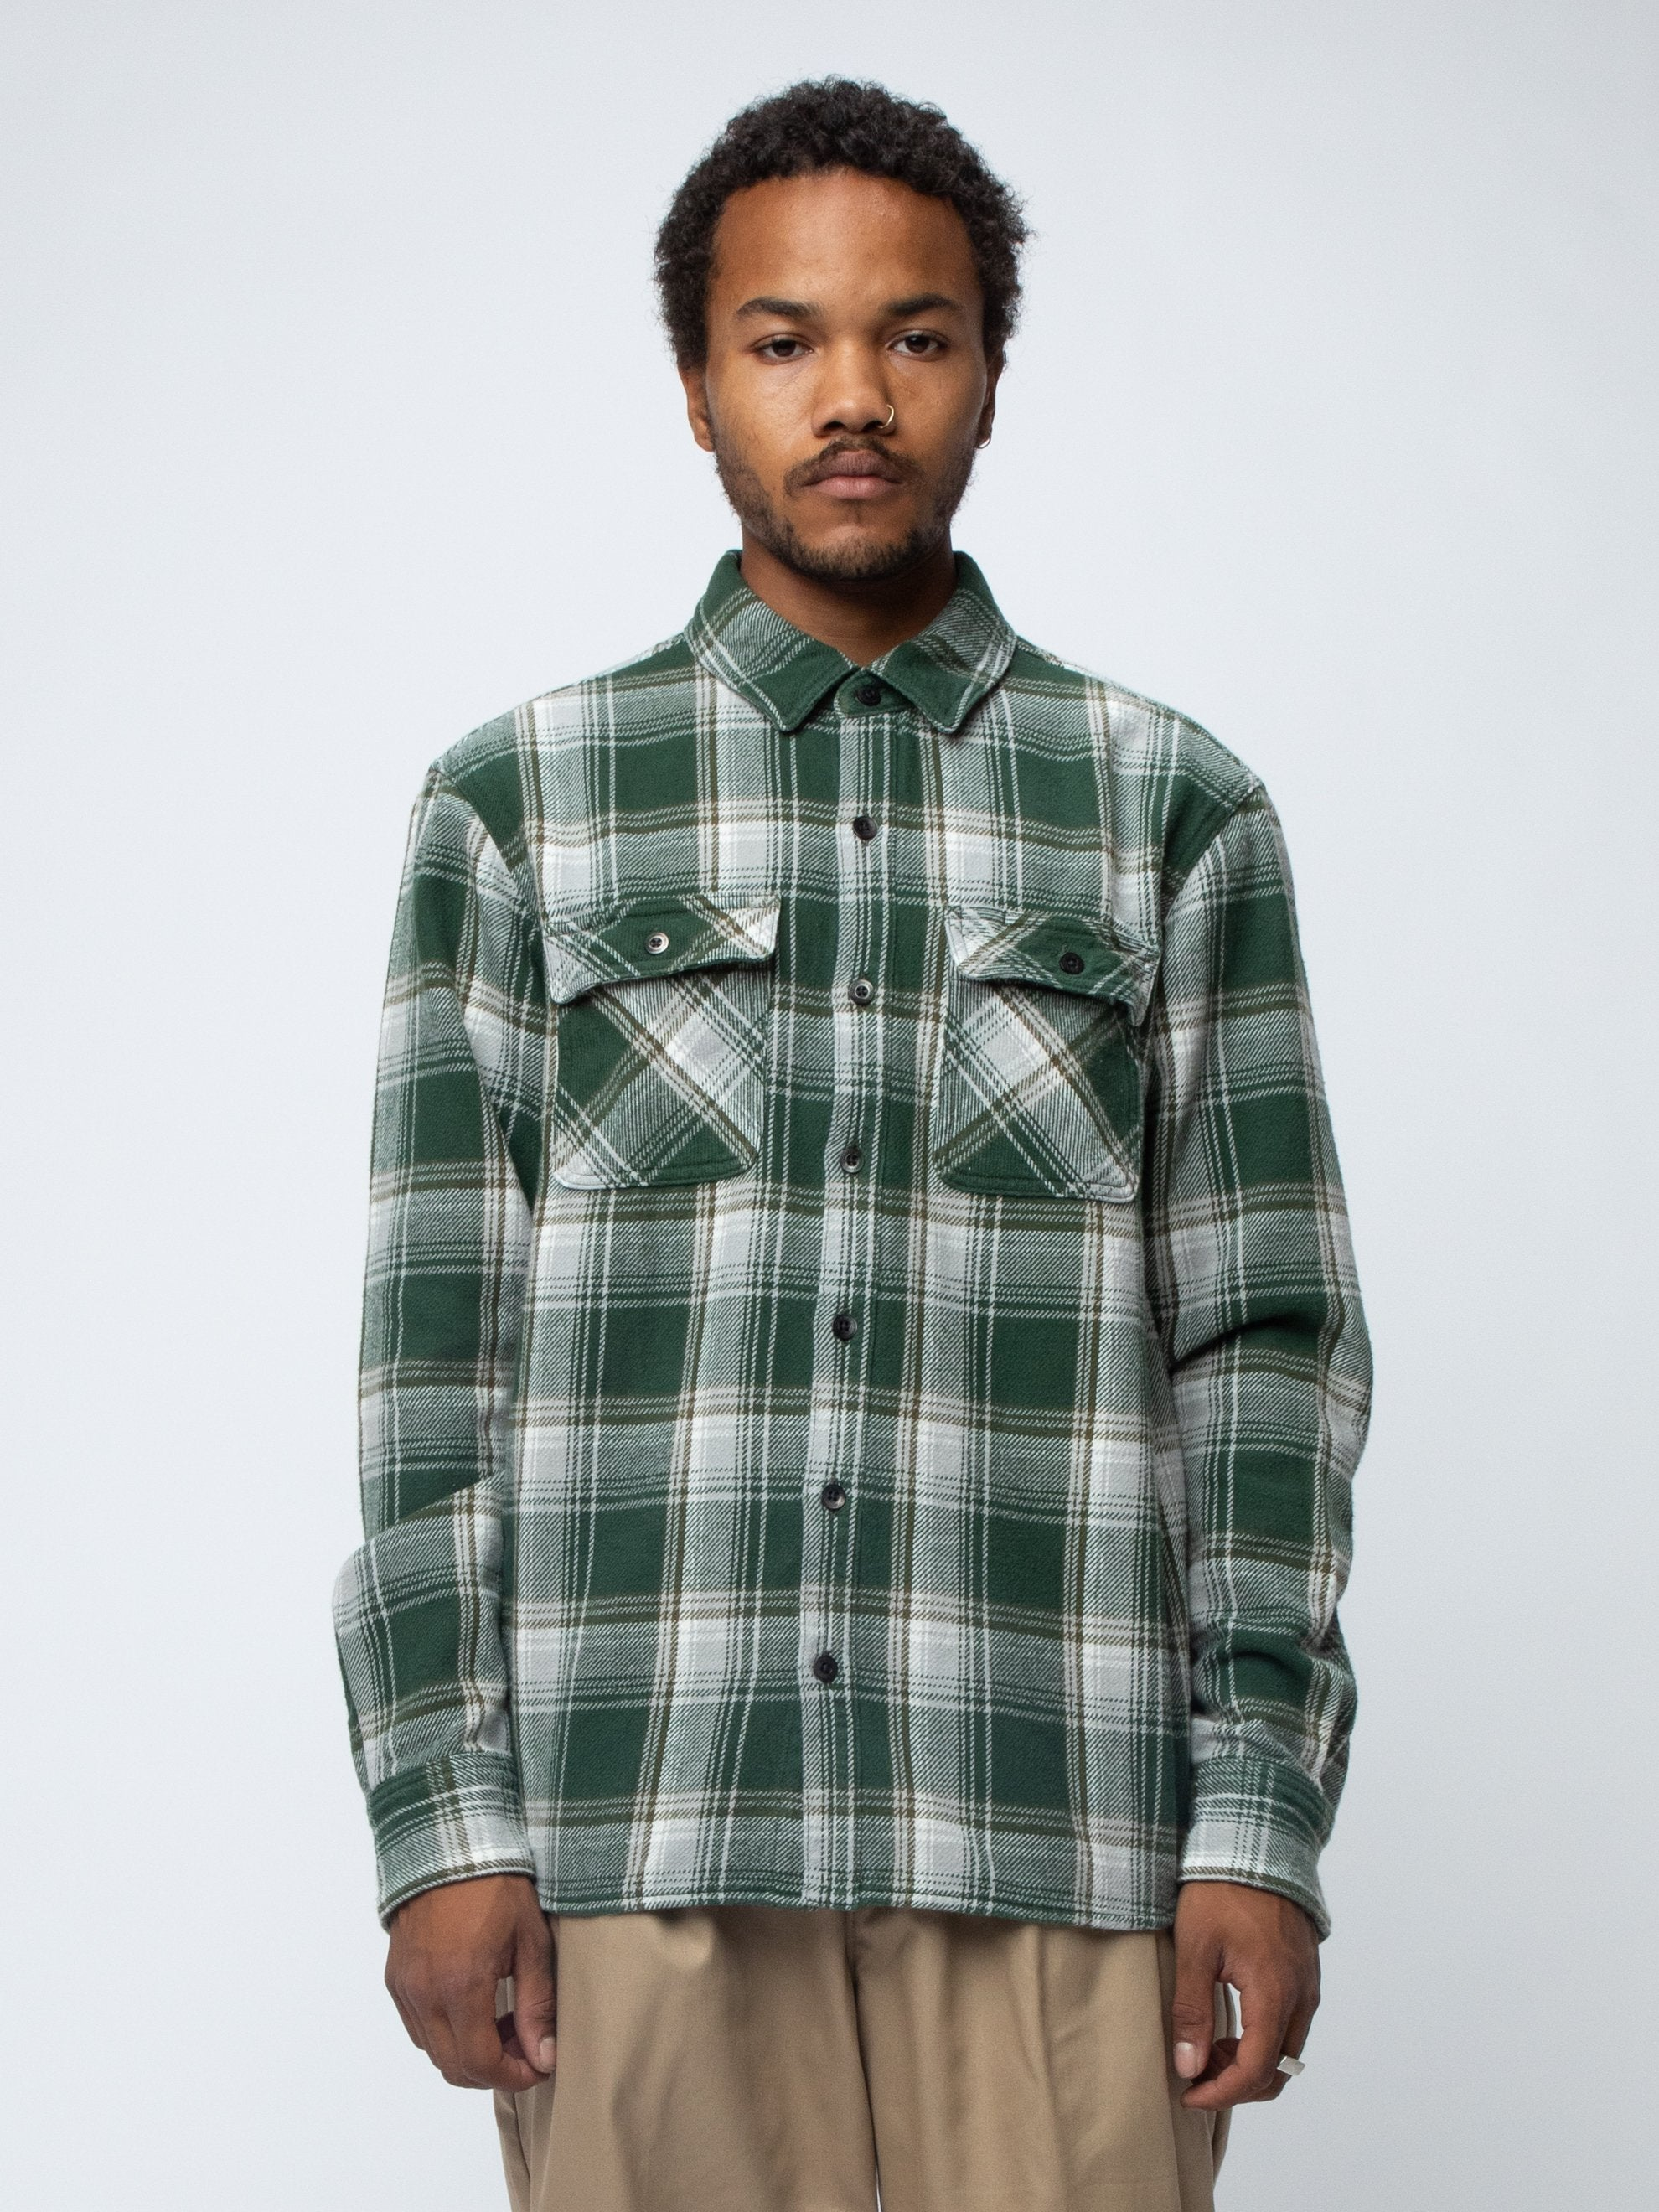 Green CABELLA / C-SHIRT . LS 3